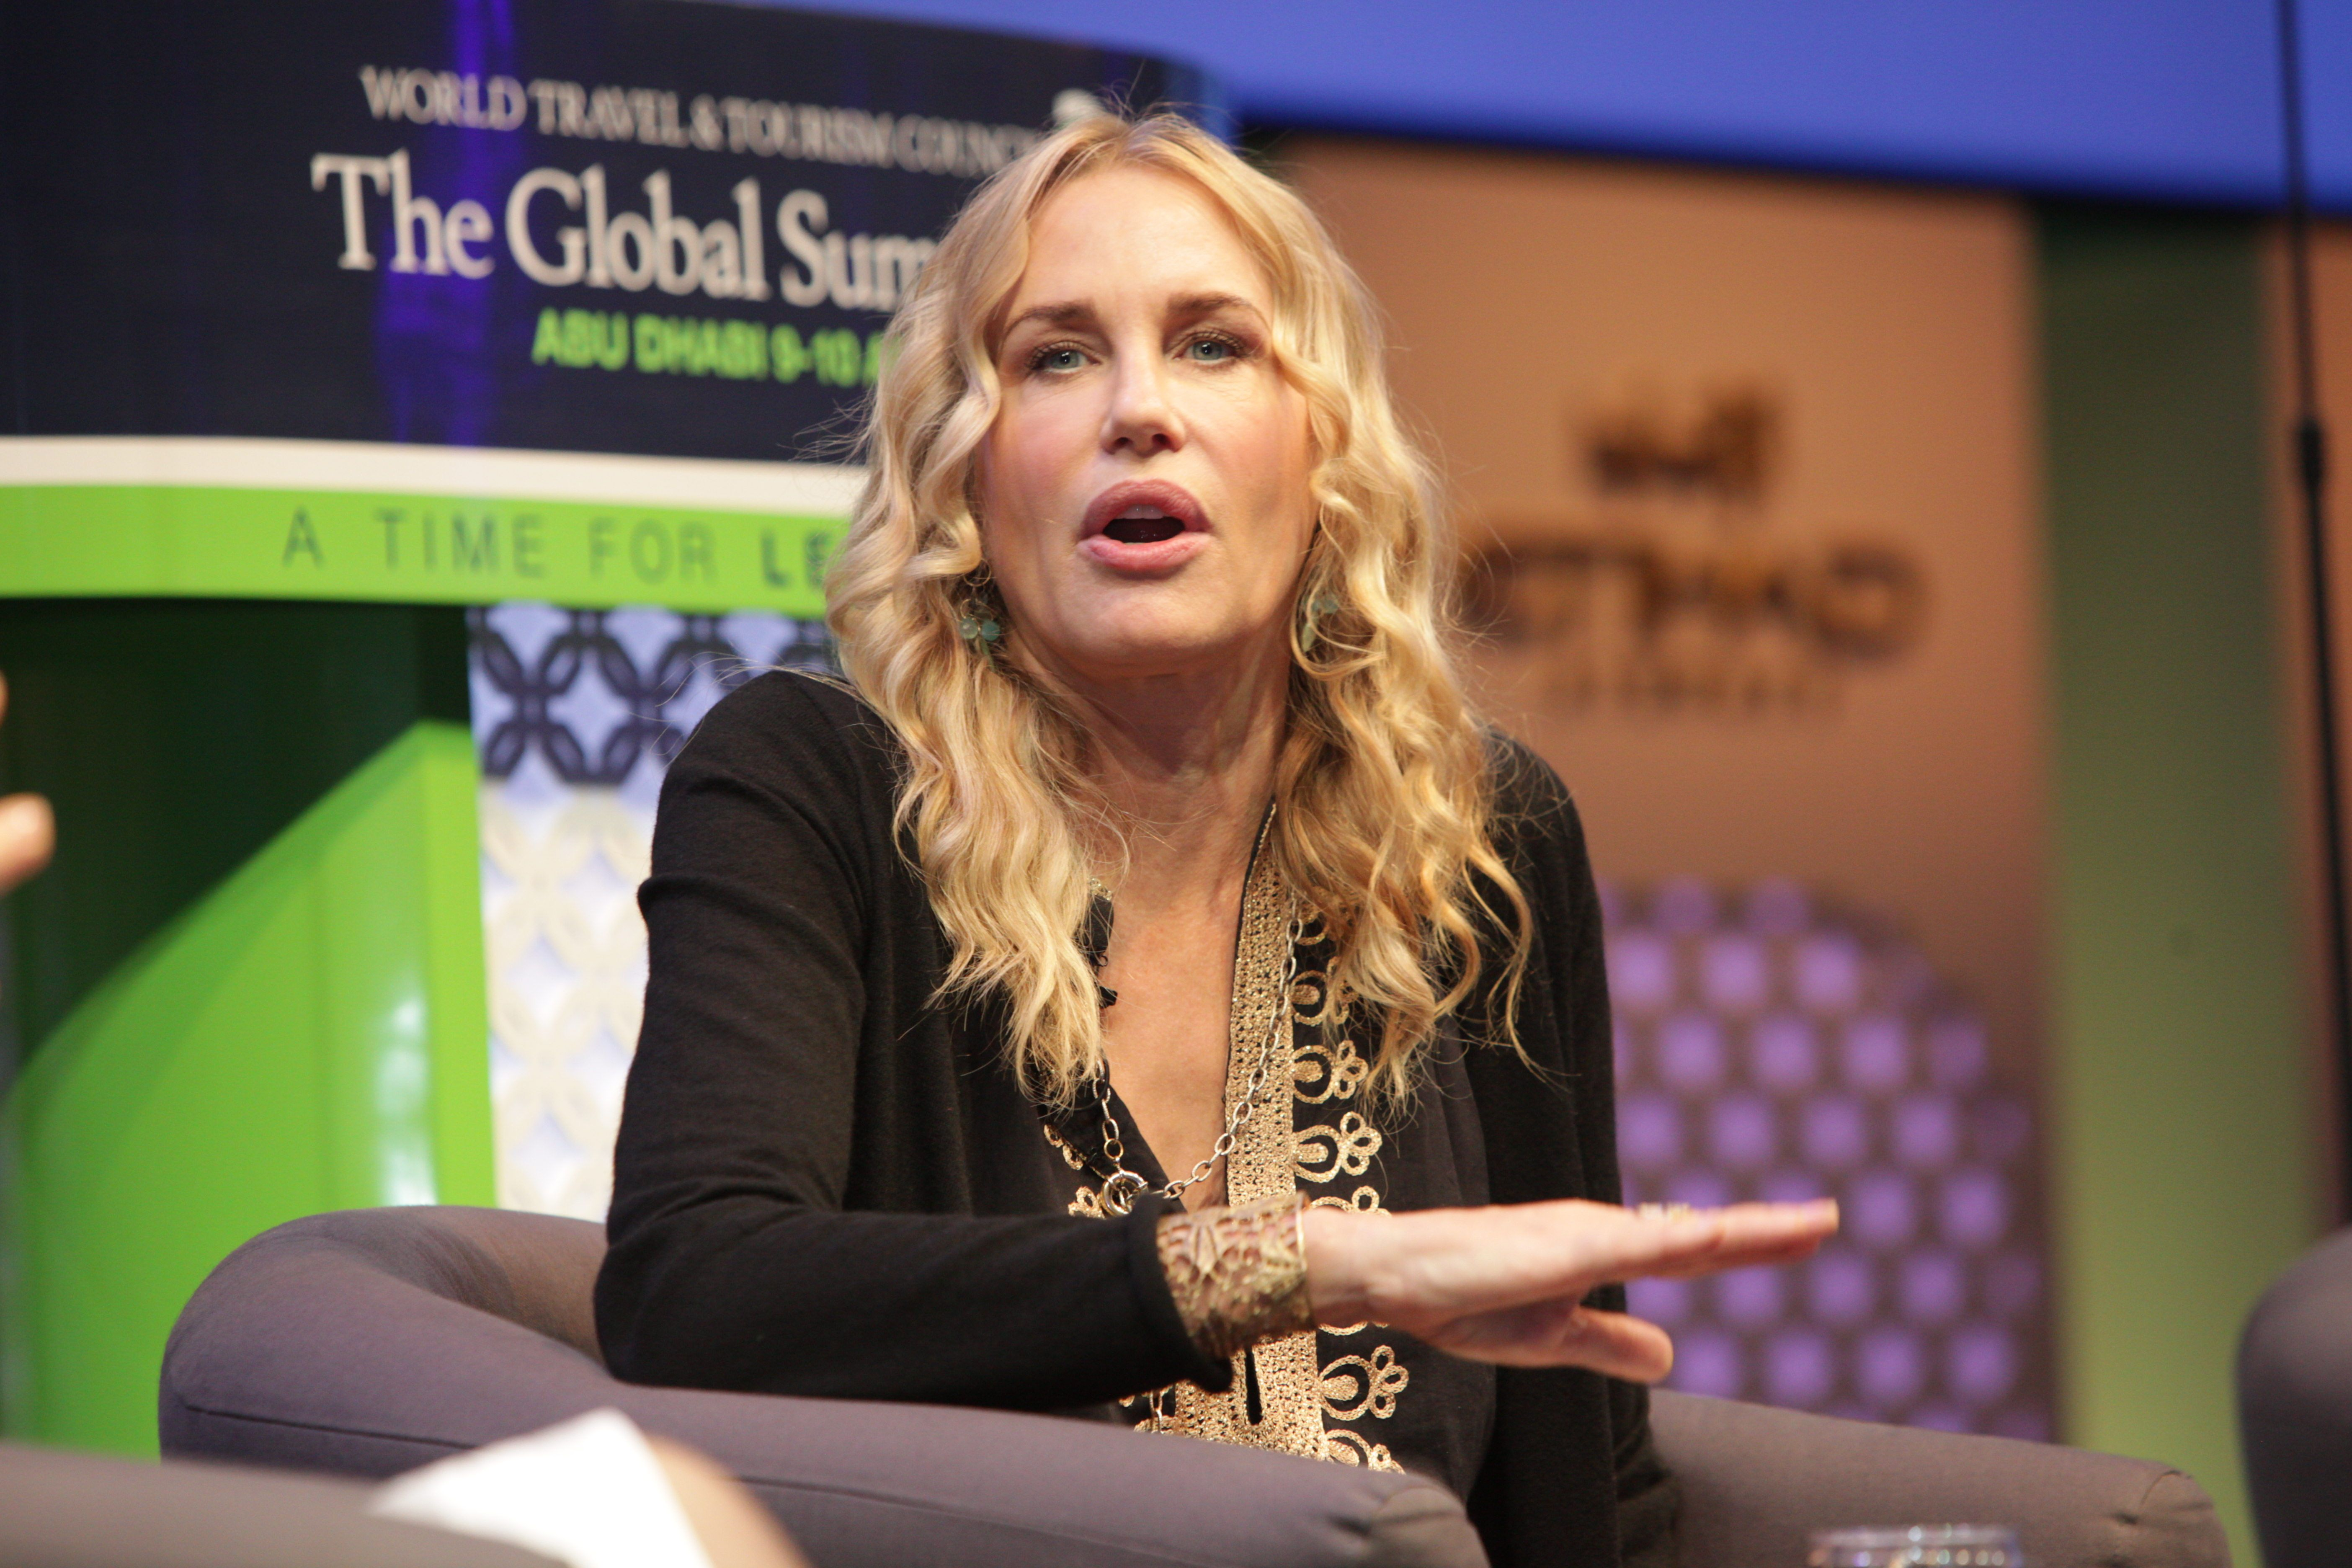 Daryl Hannah talks candidly about Autism struggles